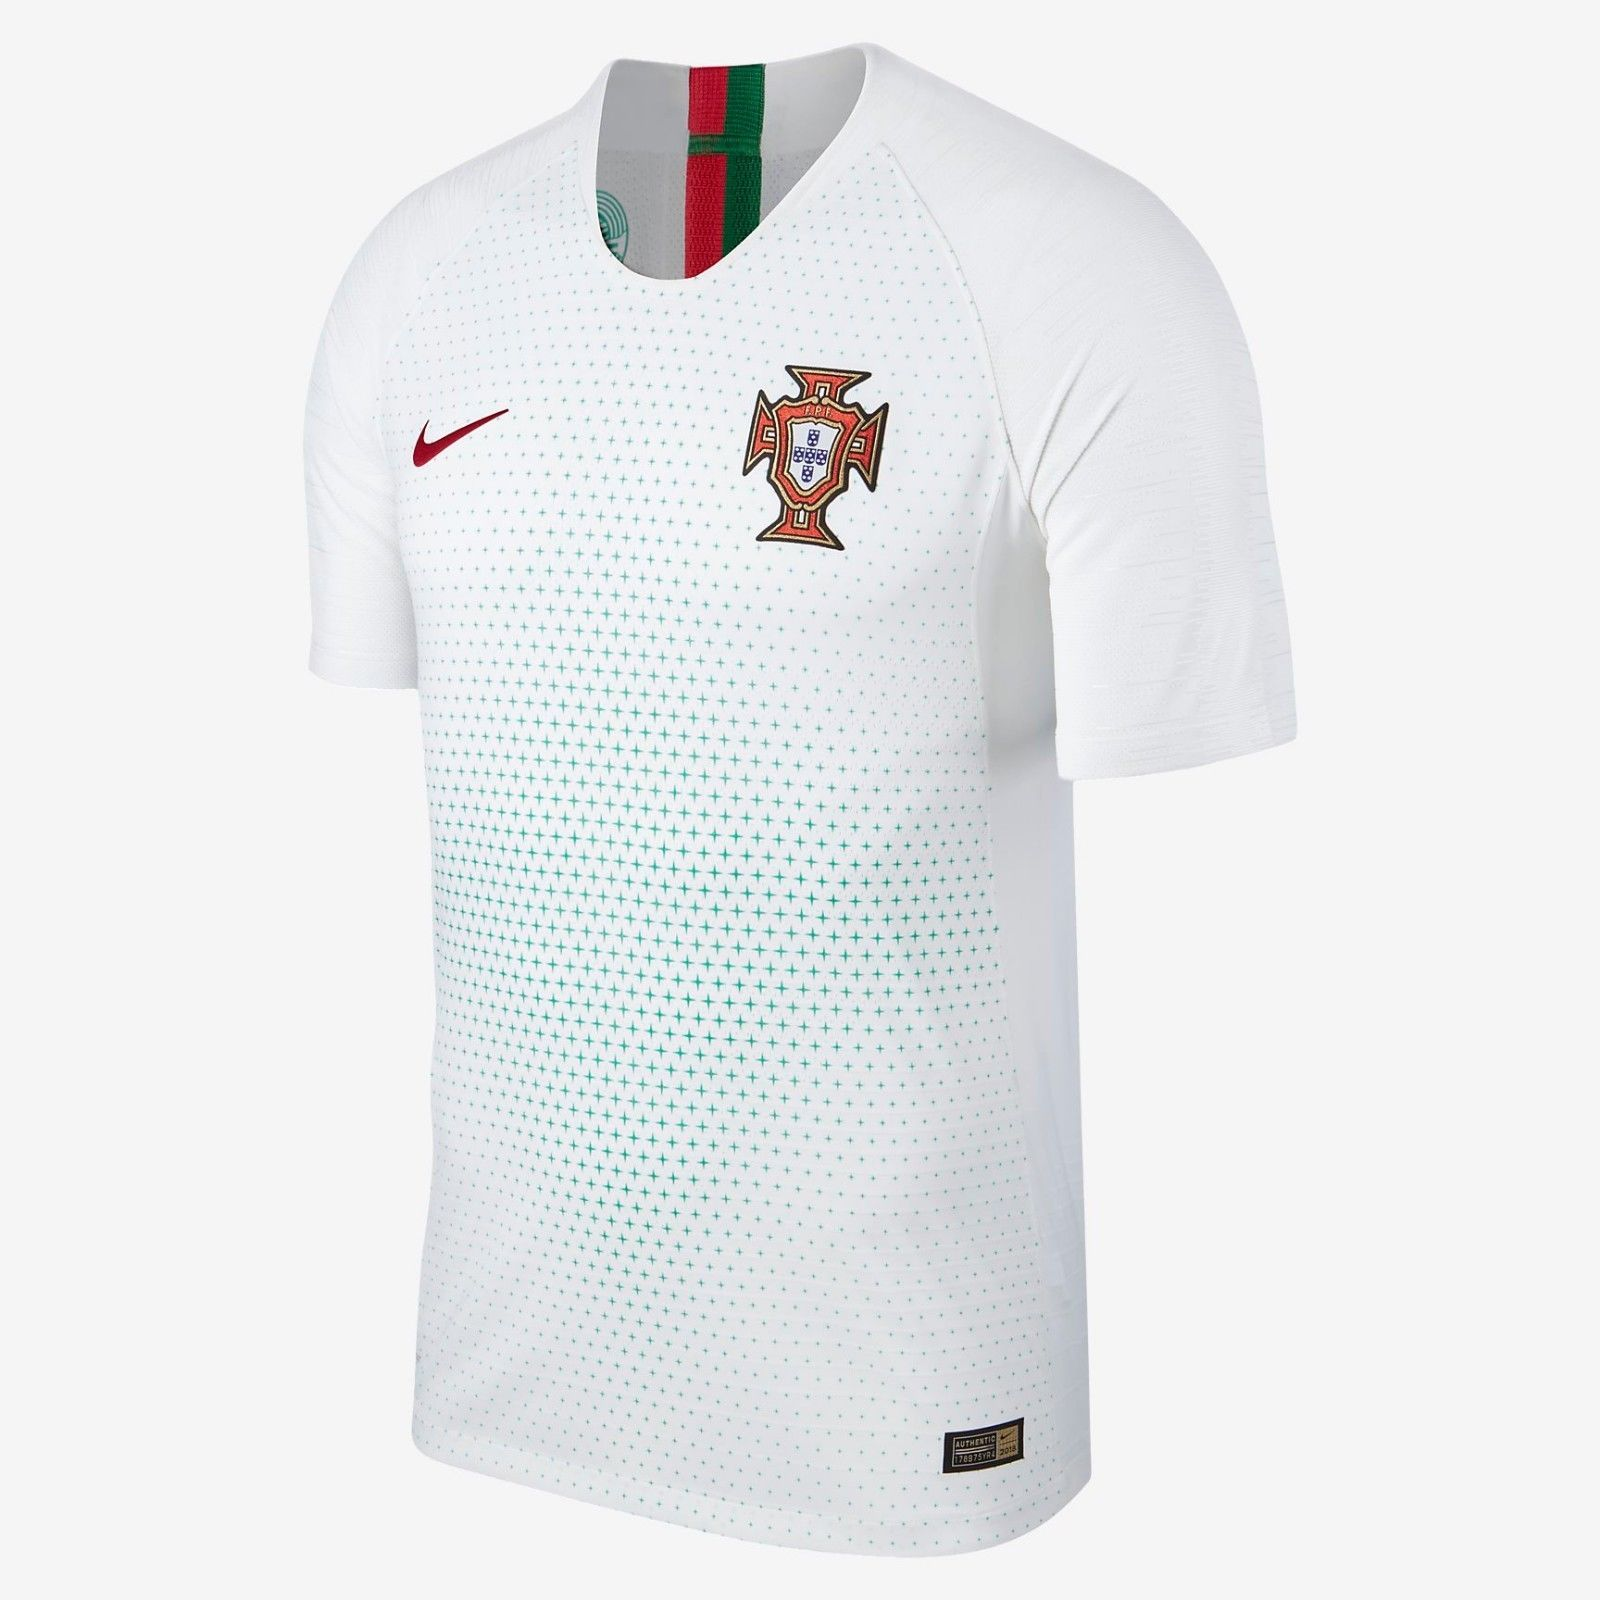 NIKE C. RONALDO PORTUGAL VAPOR MATCH AUTHENTIC AWAY JERSEY FIFA WORLD CUP  2018. 534970f9fda39